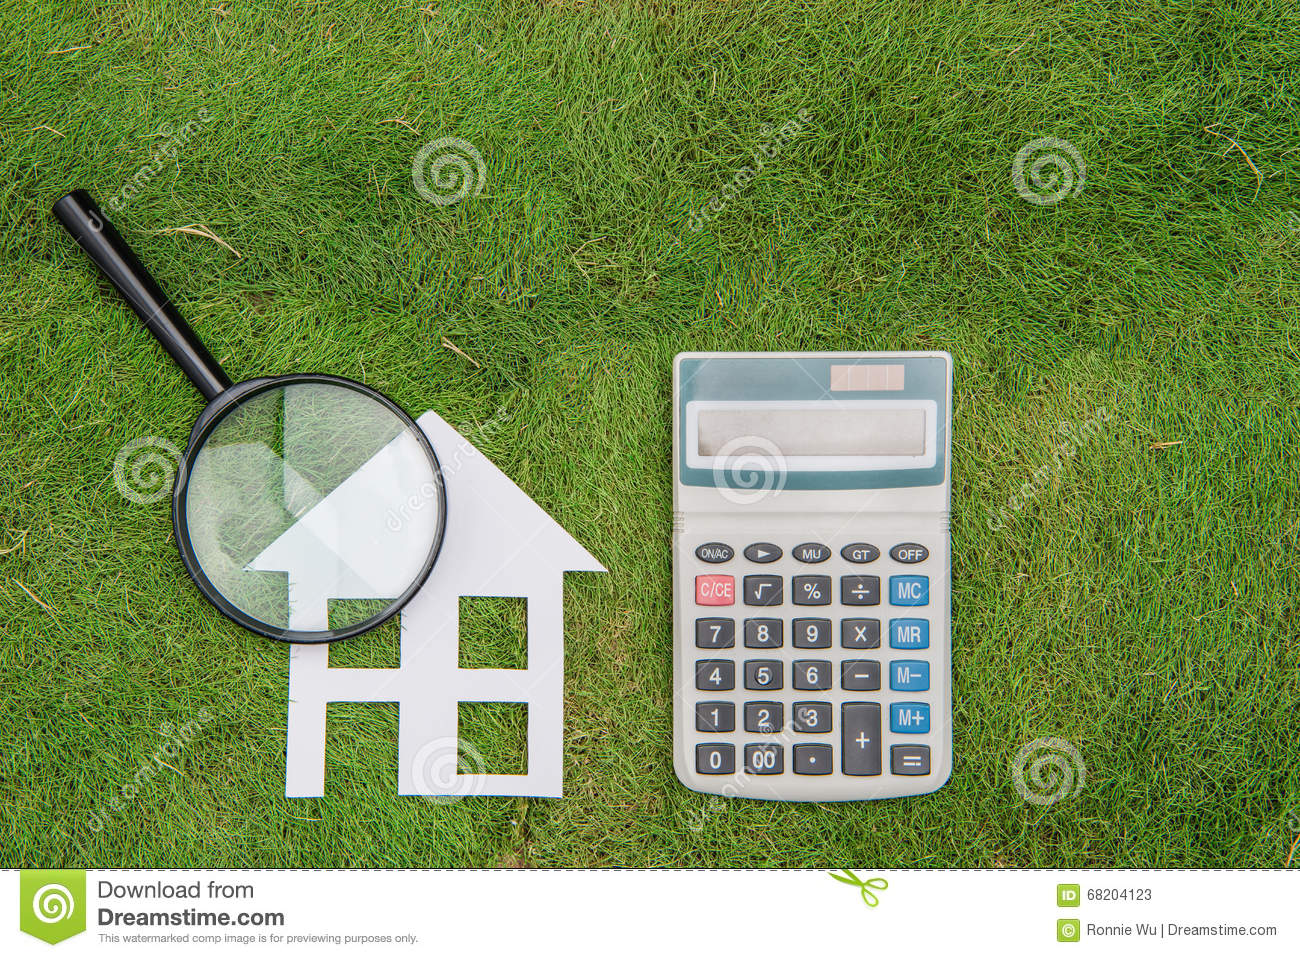 Buy green building house mortgage calculations calculator for Build a house calculator free